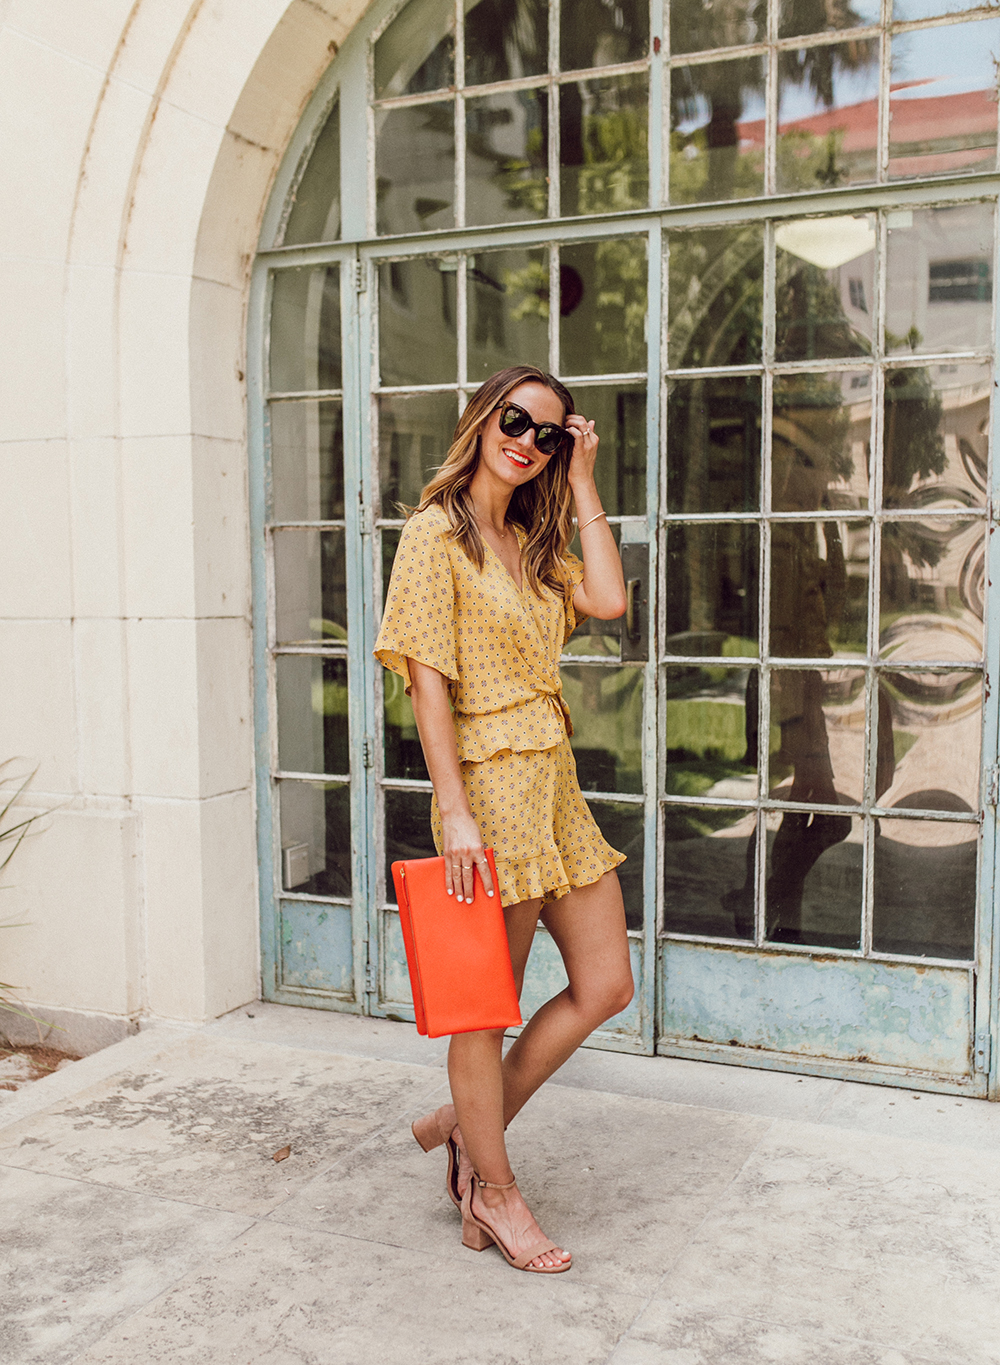 livvyland-blog-olivia-watson-austin-texas-fashion-lifestyle-blogger-river-island-floral-print-yellow-knot-front-romper-summer-occasion-outfit-idea-9